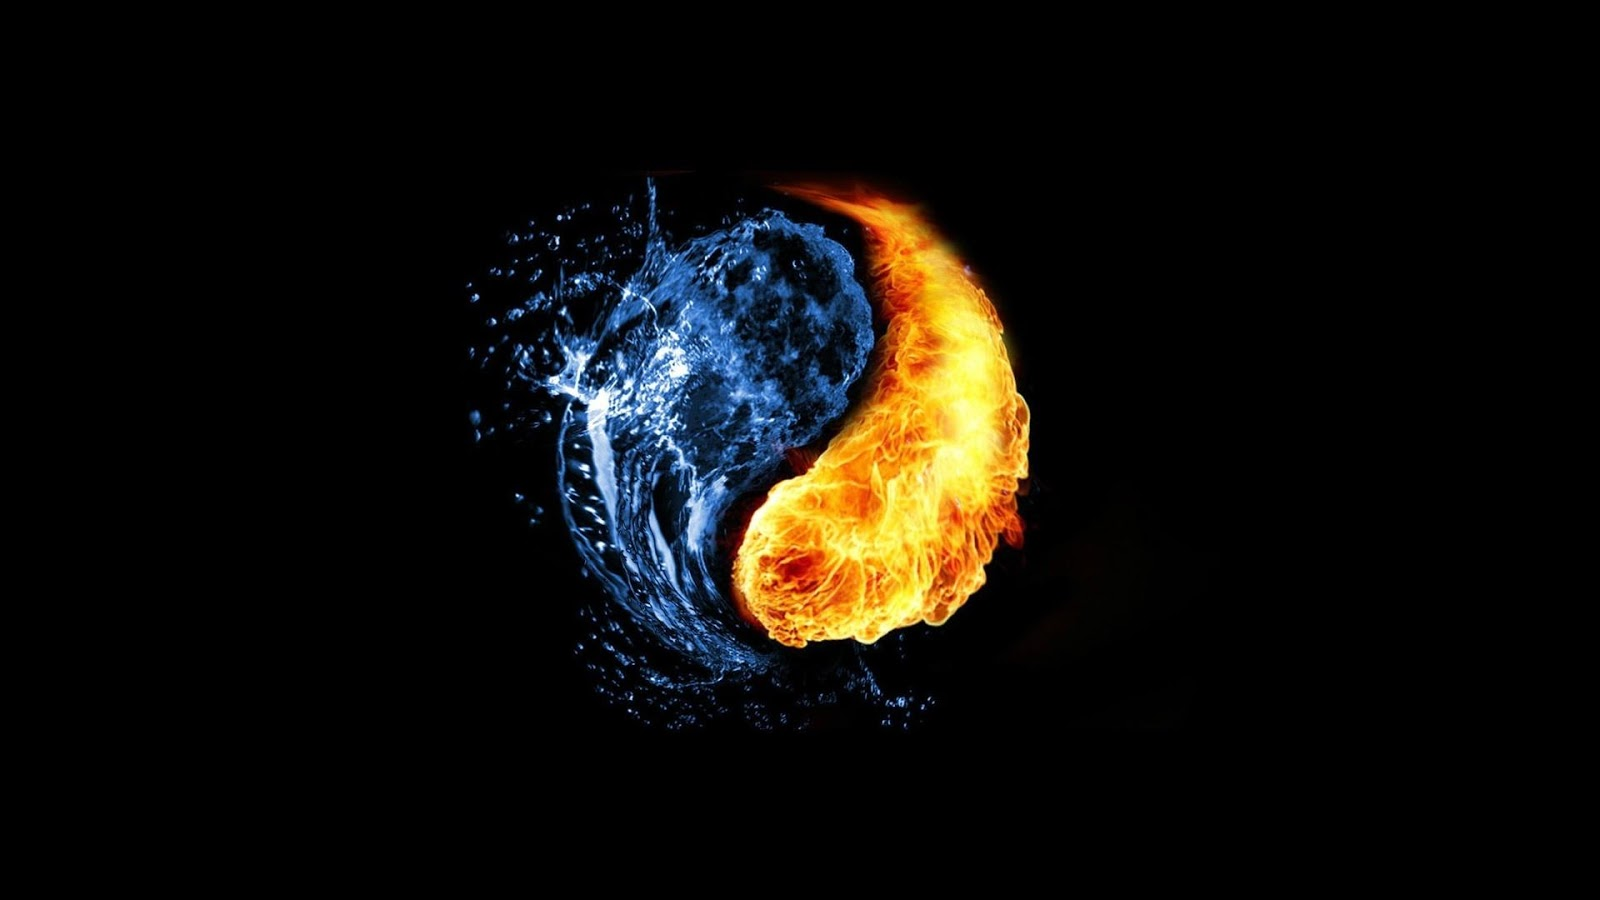 fire and ice live wallpaper 1.30 apk download - android